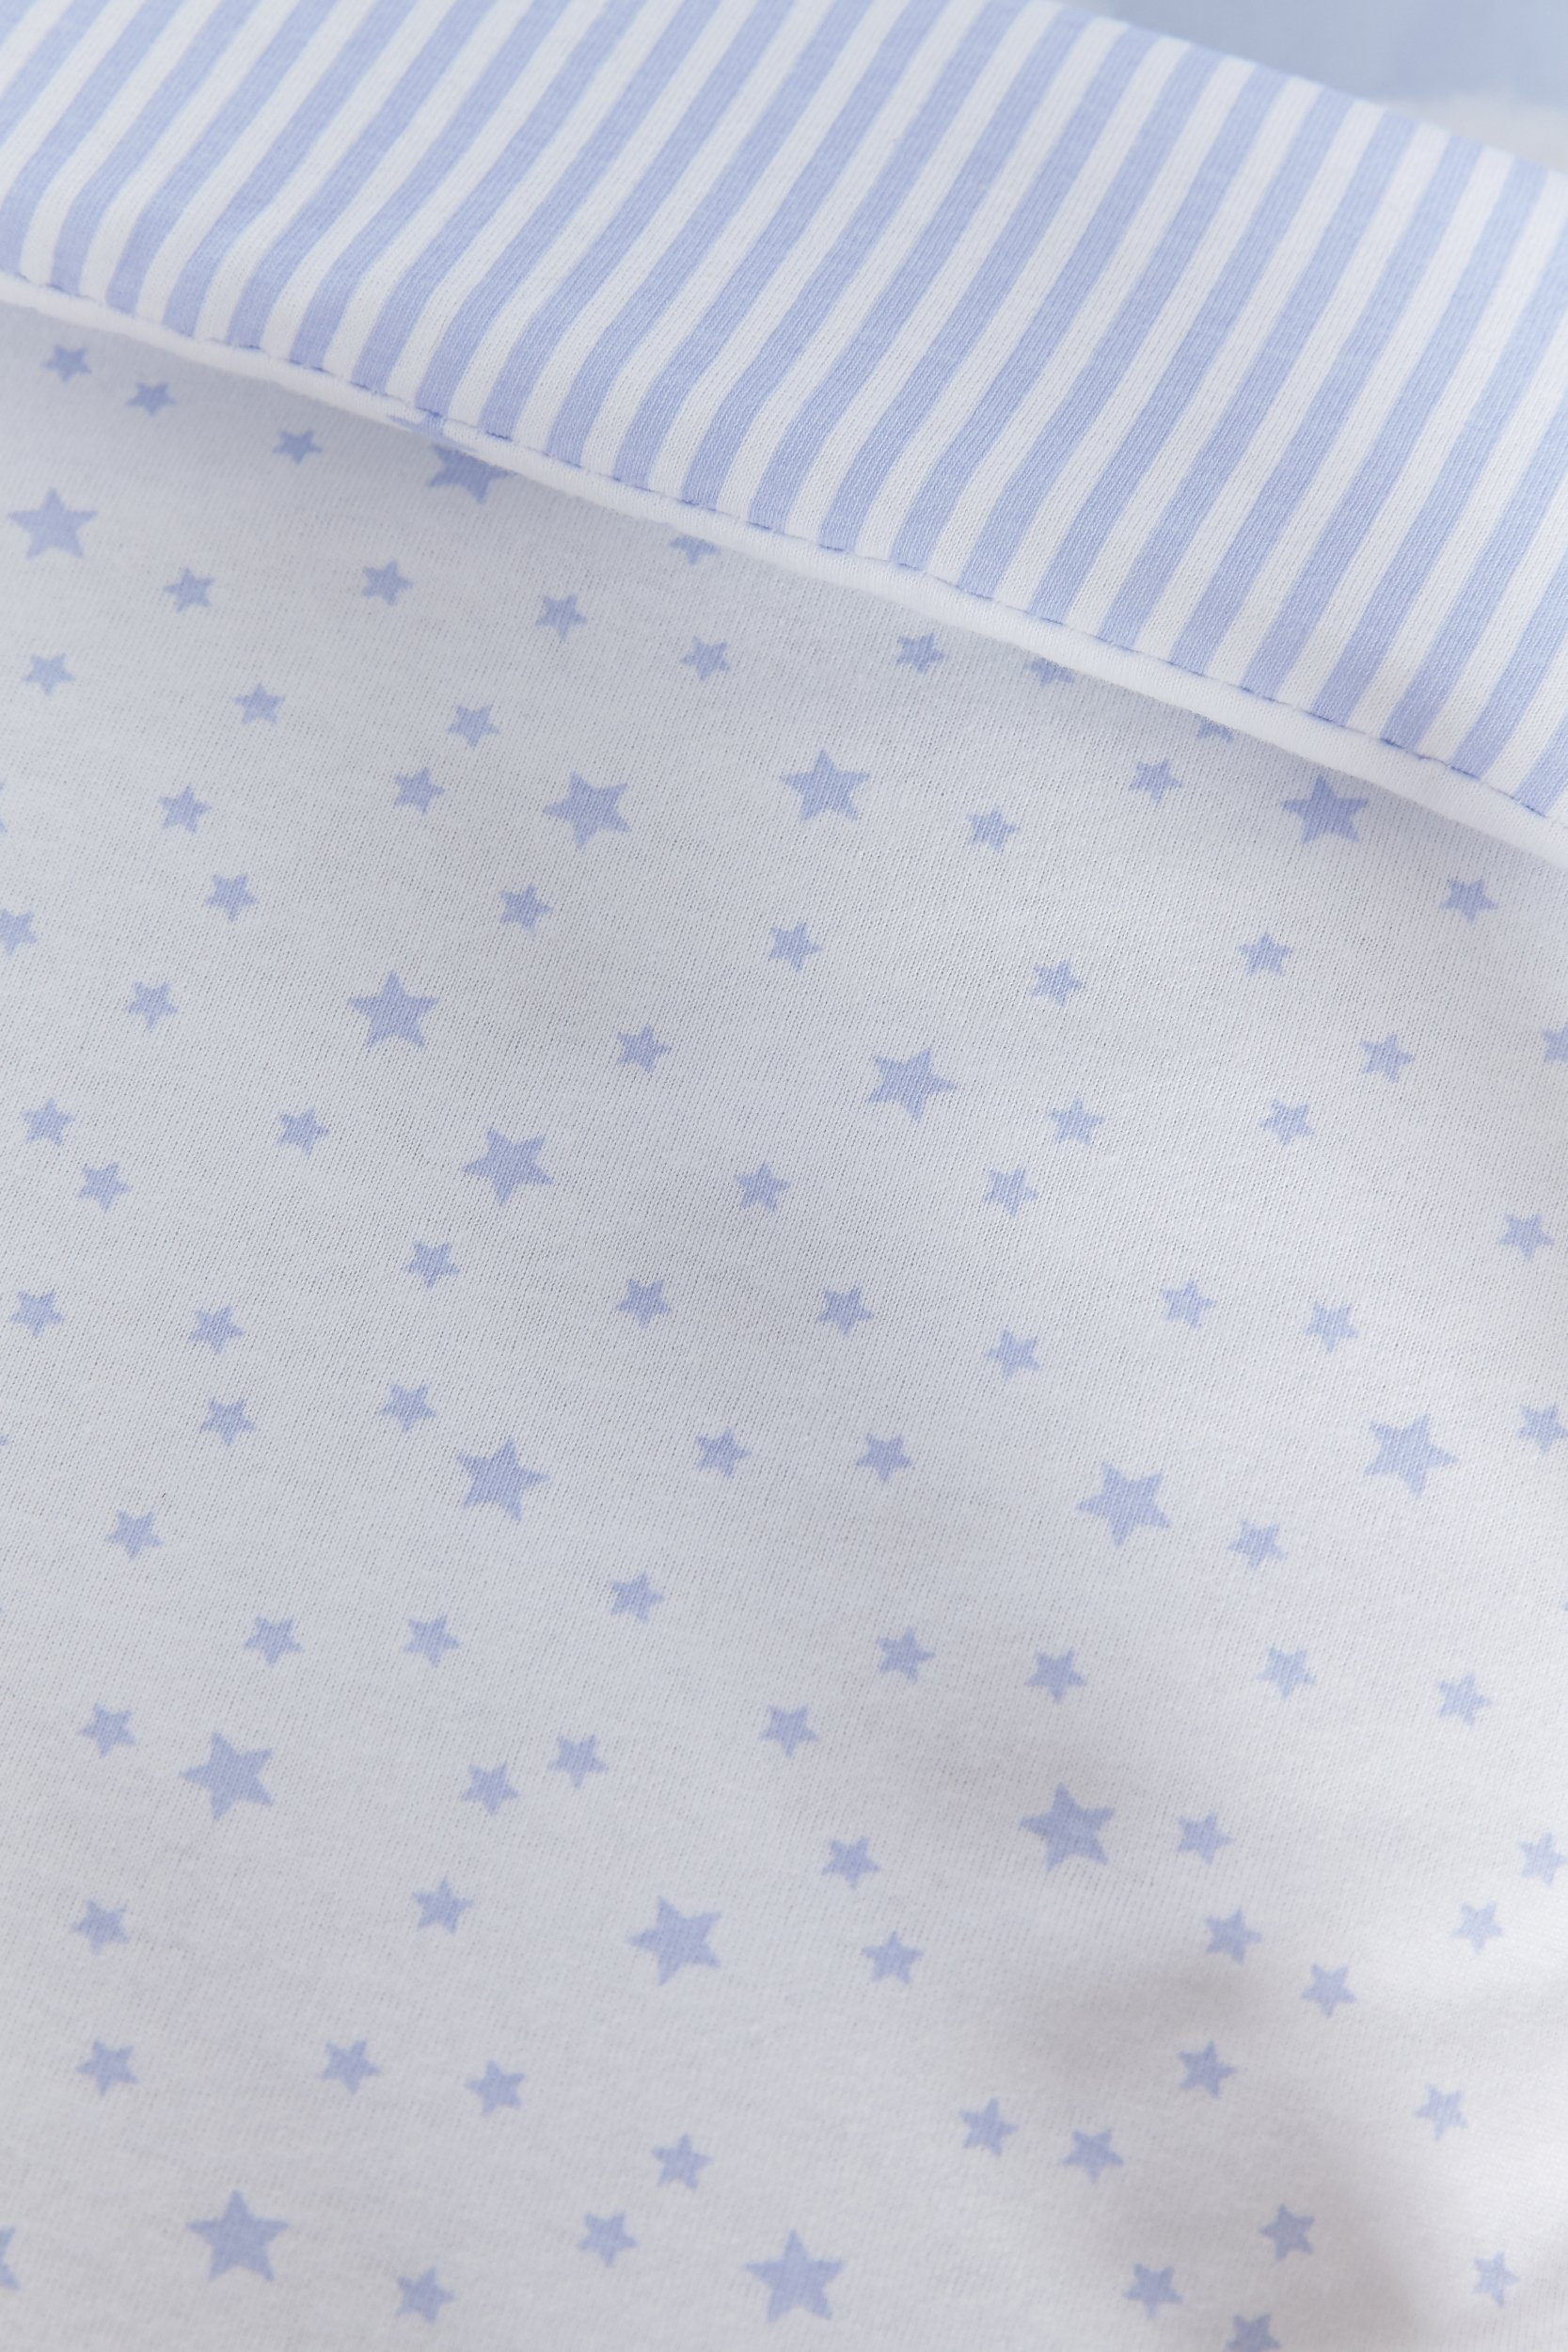 Clair de Lune Crib Set (Blue, Stars and Stripes, 2-Piece) Clair de Lune Featuring a subtle Stars and Stripes print this beautiful bedding set creates a relaxing sleeping area for your precious little one. Made from super soft 100% cotton. Comes complete with Stars and Stripes reversible padded bumper, and 2.5 tog coverlet. 8